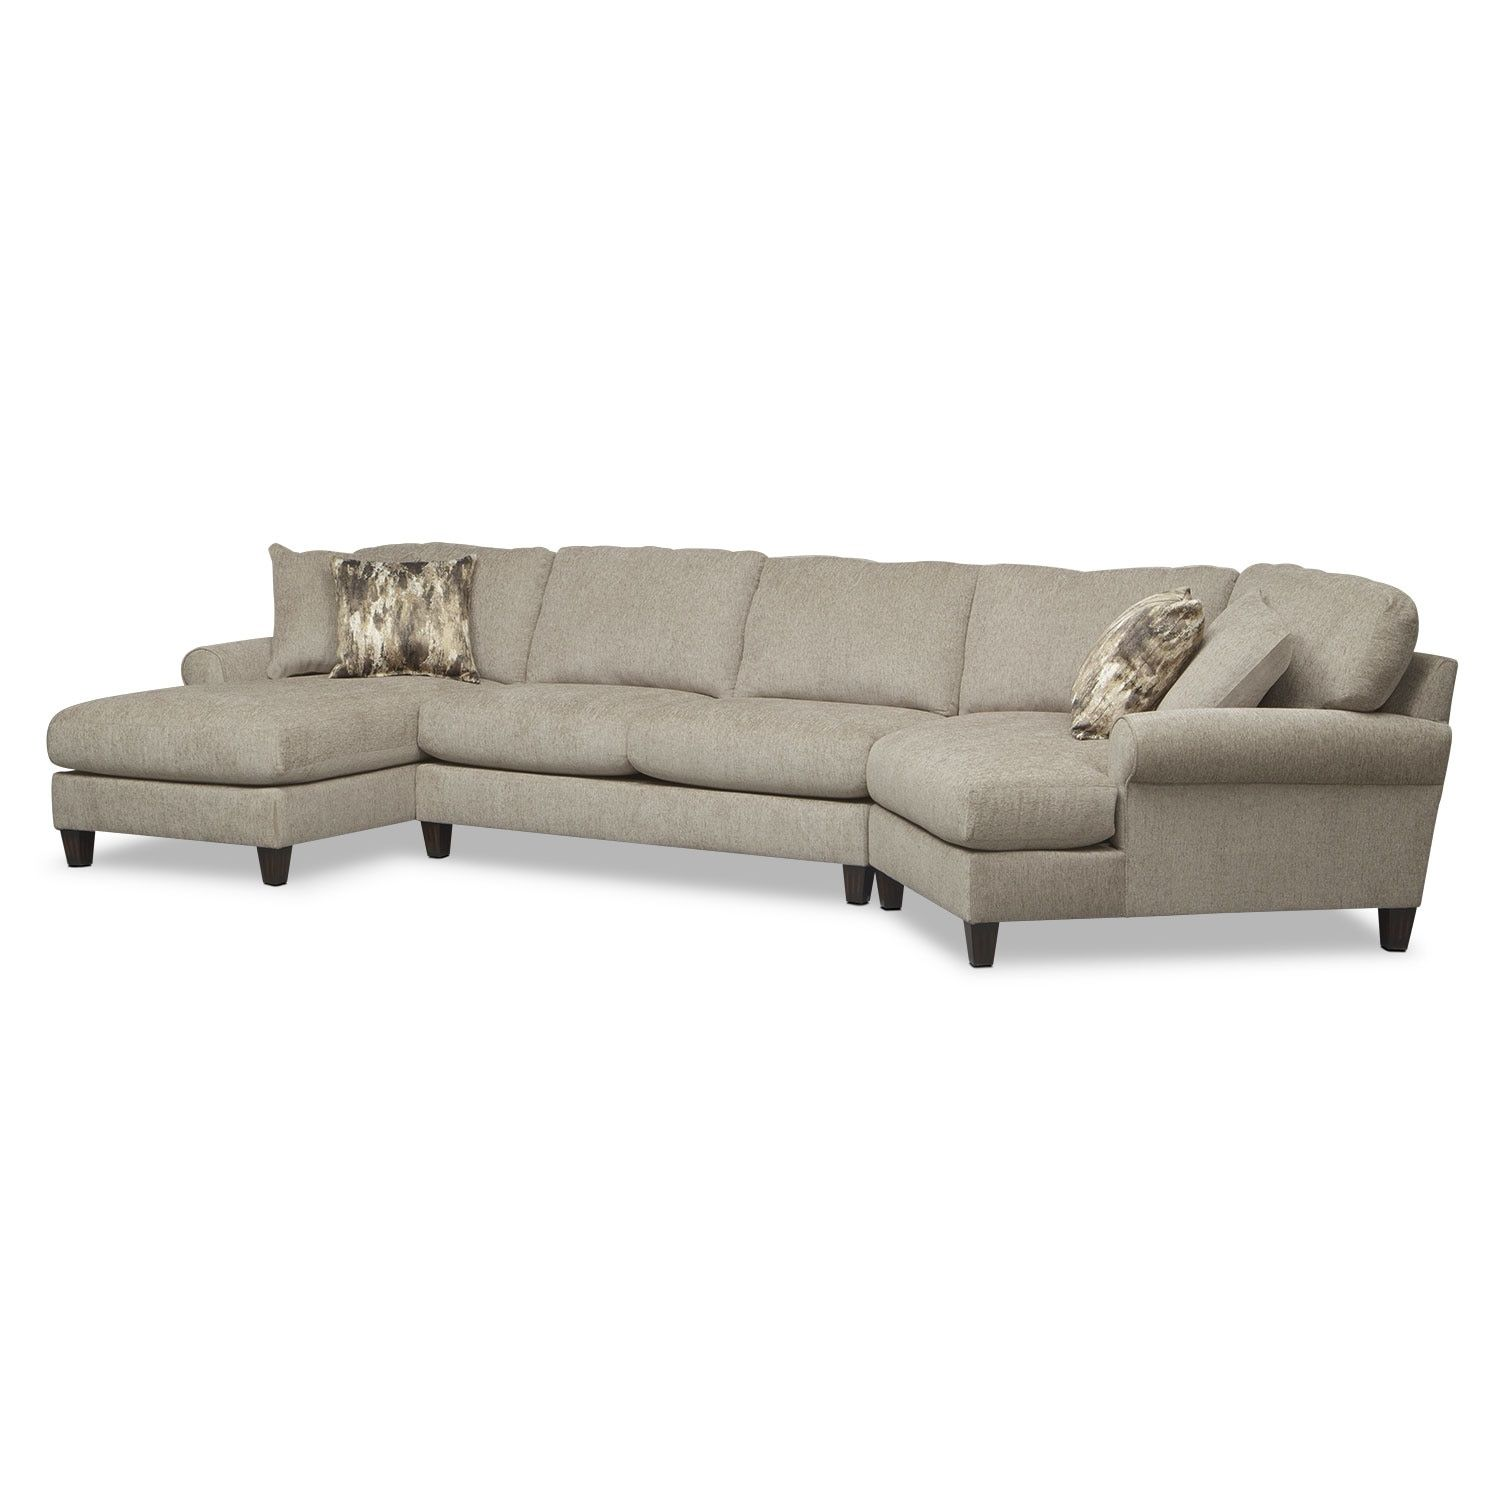 Best Karma 3 Piece Sectional With Right Facing Cuddler And Left 400 x 300